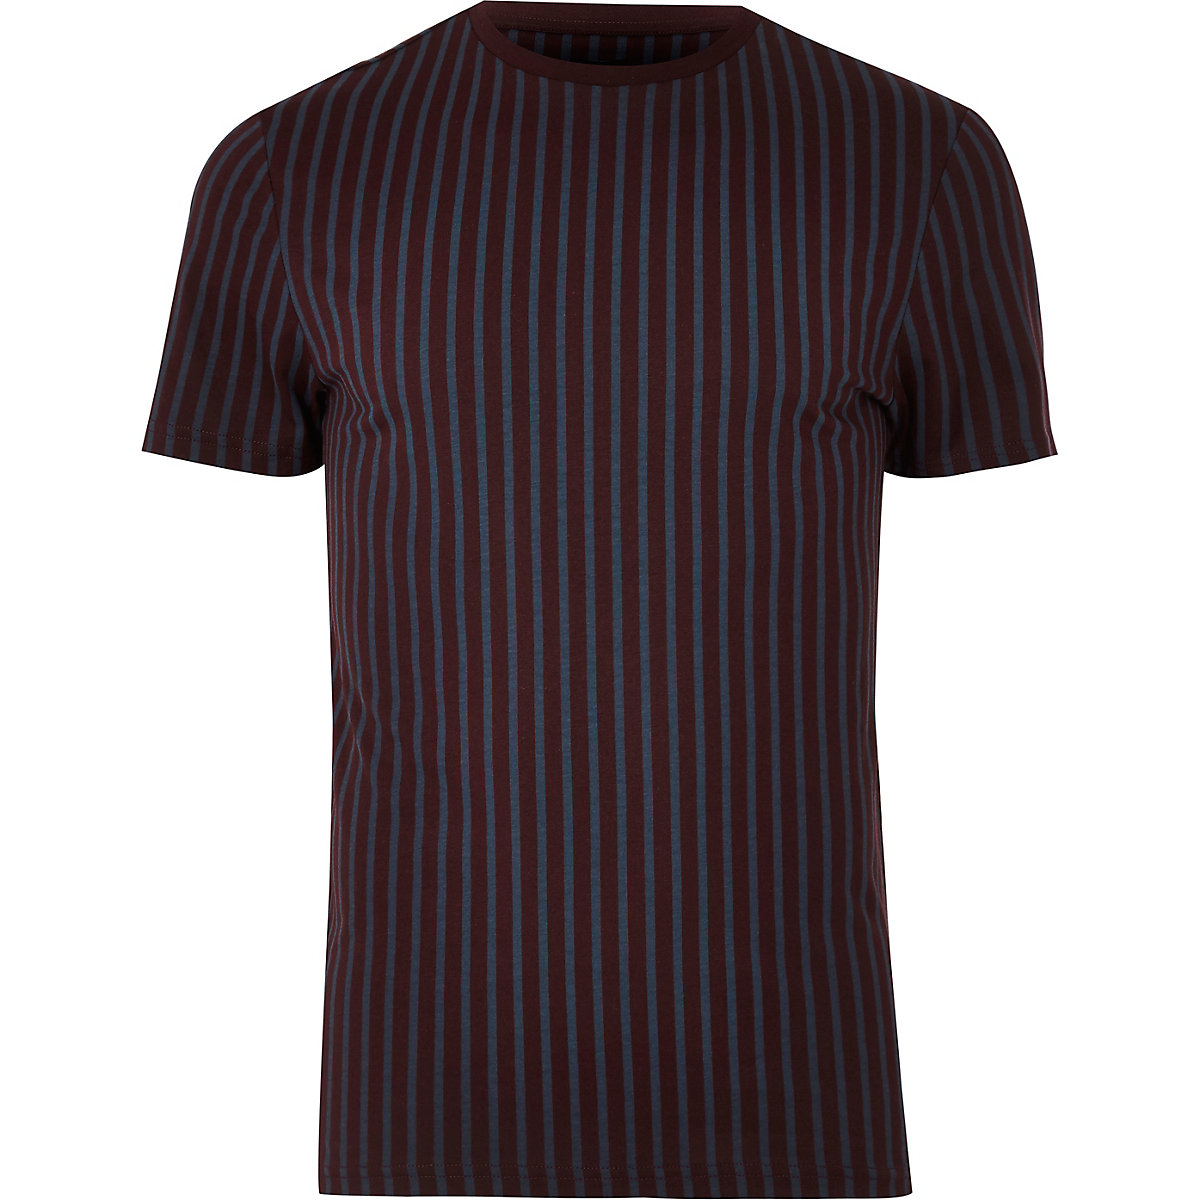 Dark red muscle fit vertical stripe T-shirt